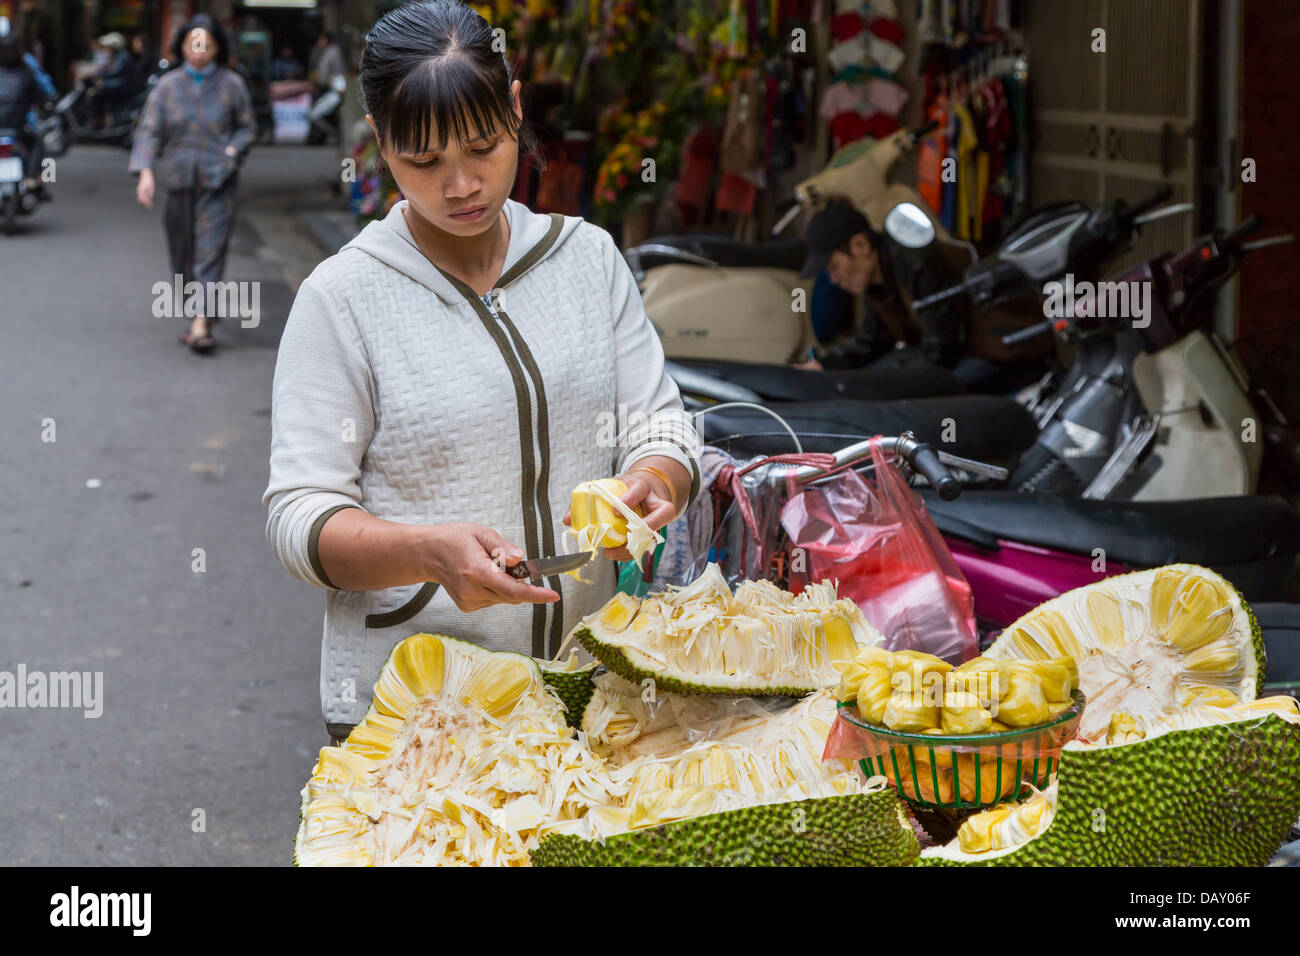 A young lady street vendor selling fresh fruit and pastry in Hanoi, Vietnam, Asia. - Stock Image